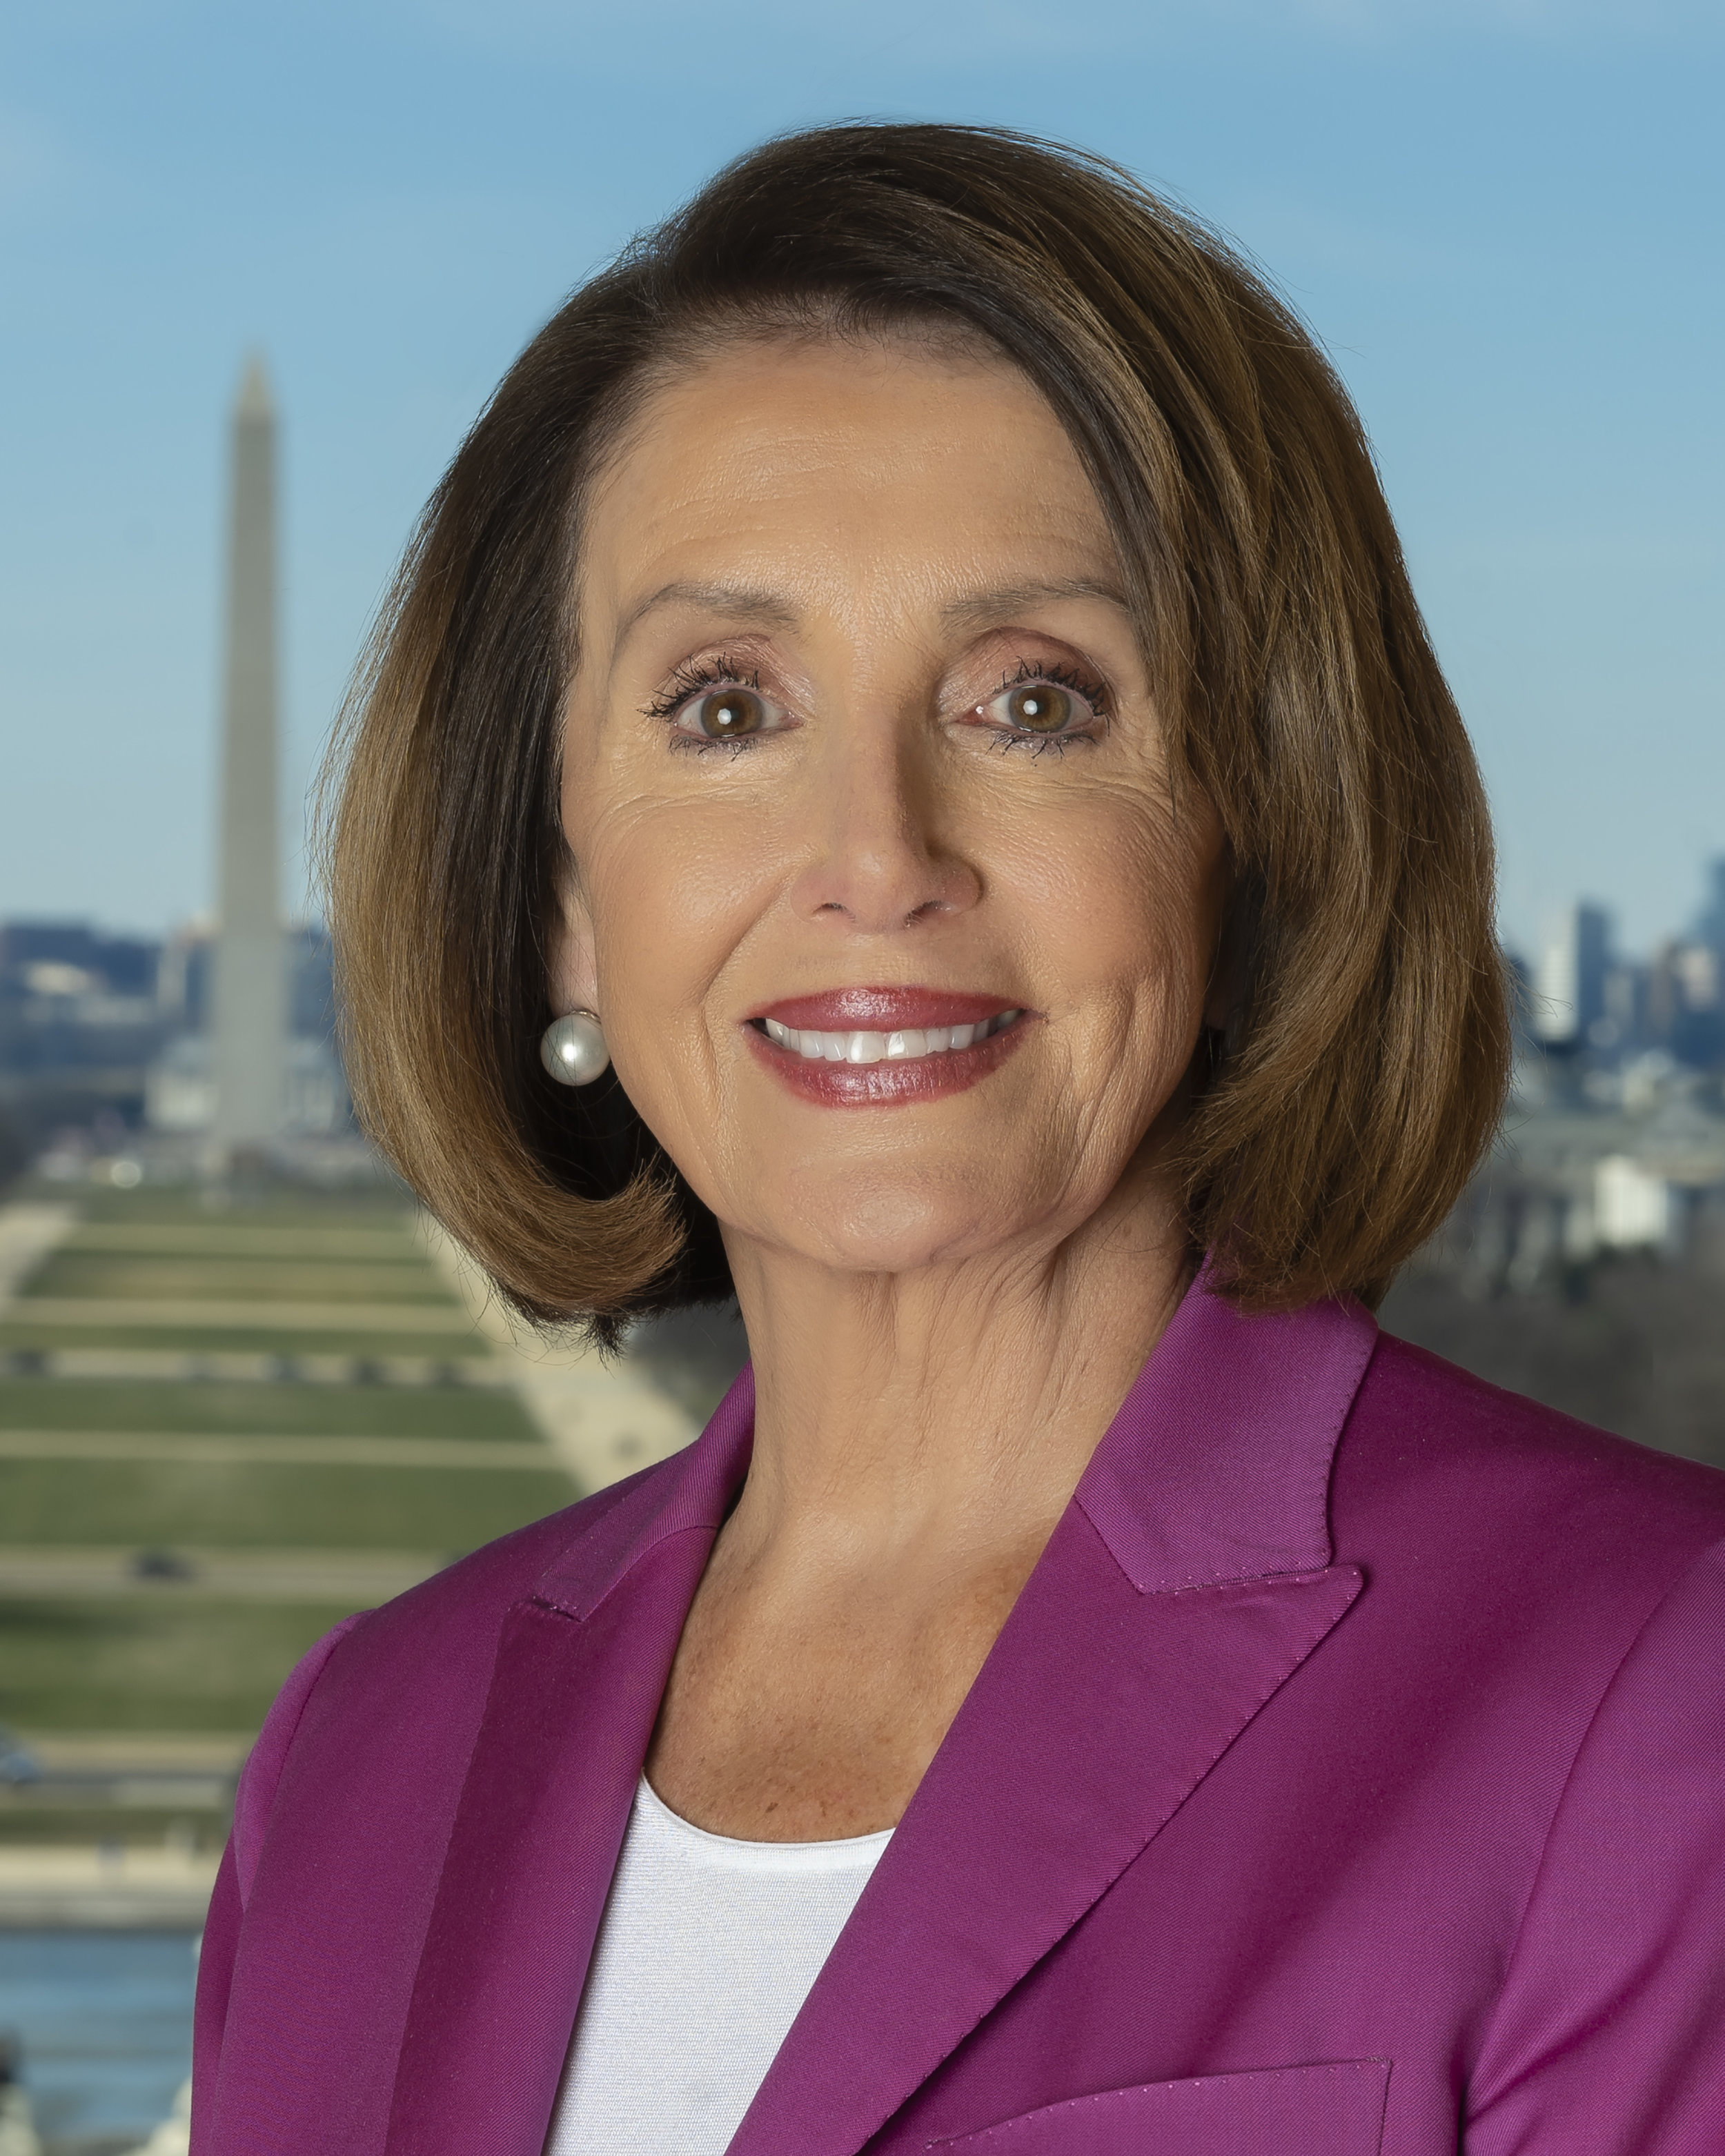 Official_photo_of_Speaker_Nancy_Pelosi_in_2019.jpg